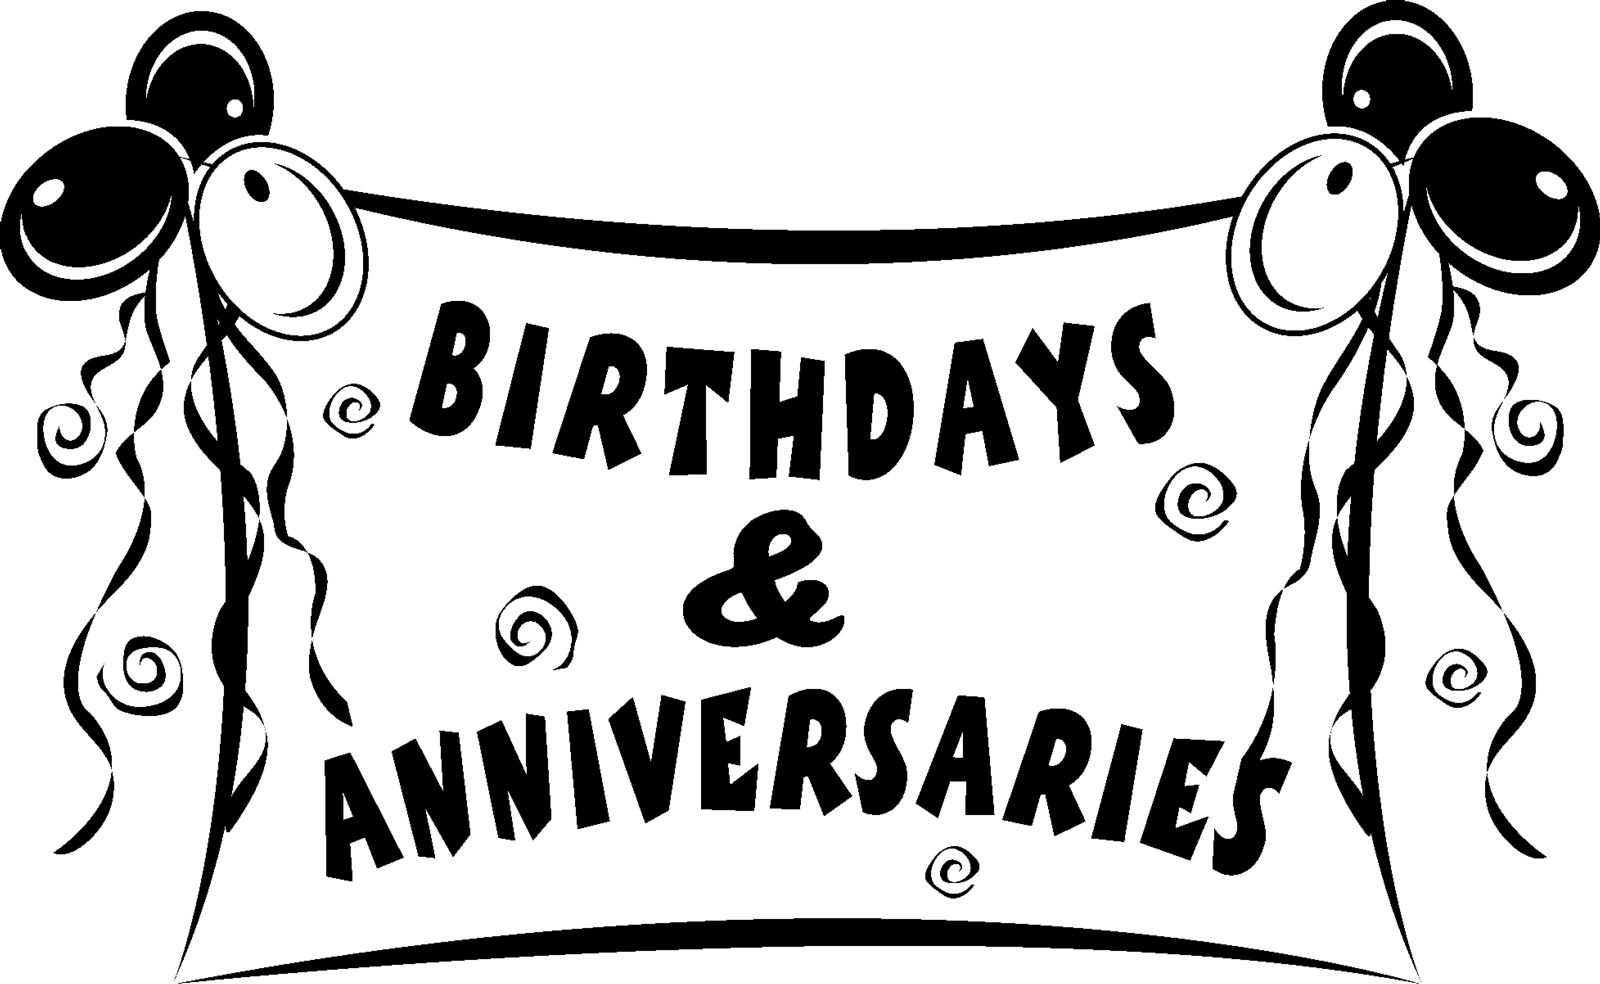 Birthdays And Anniversaries Clipart.